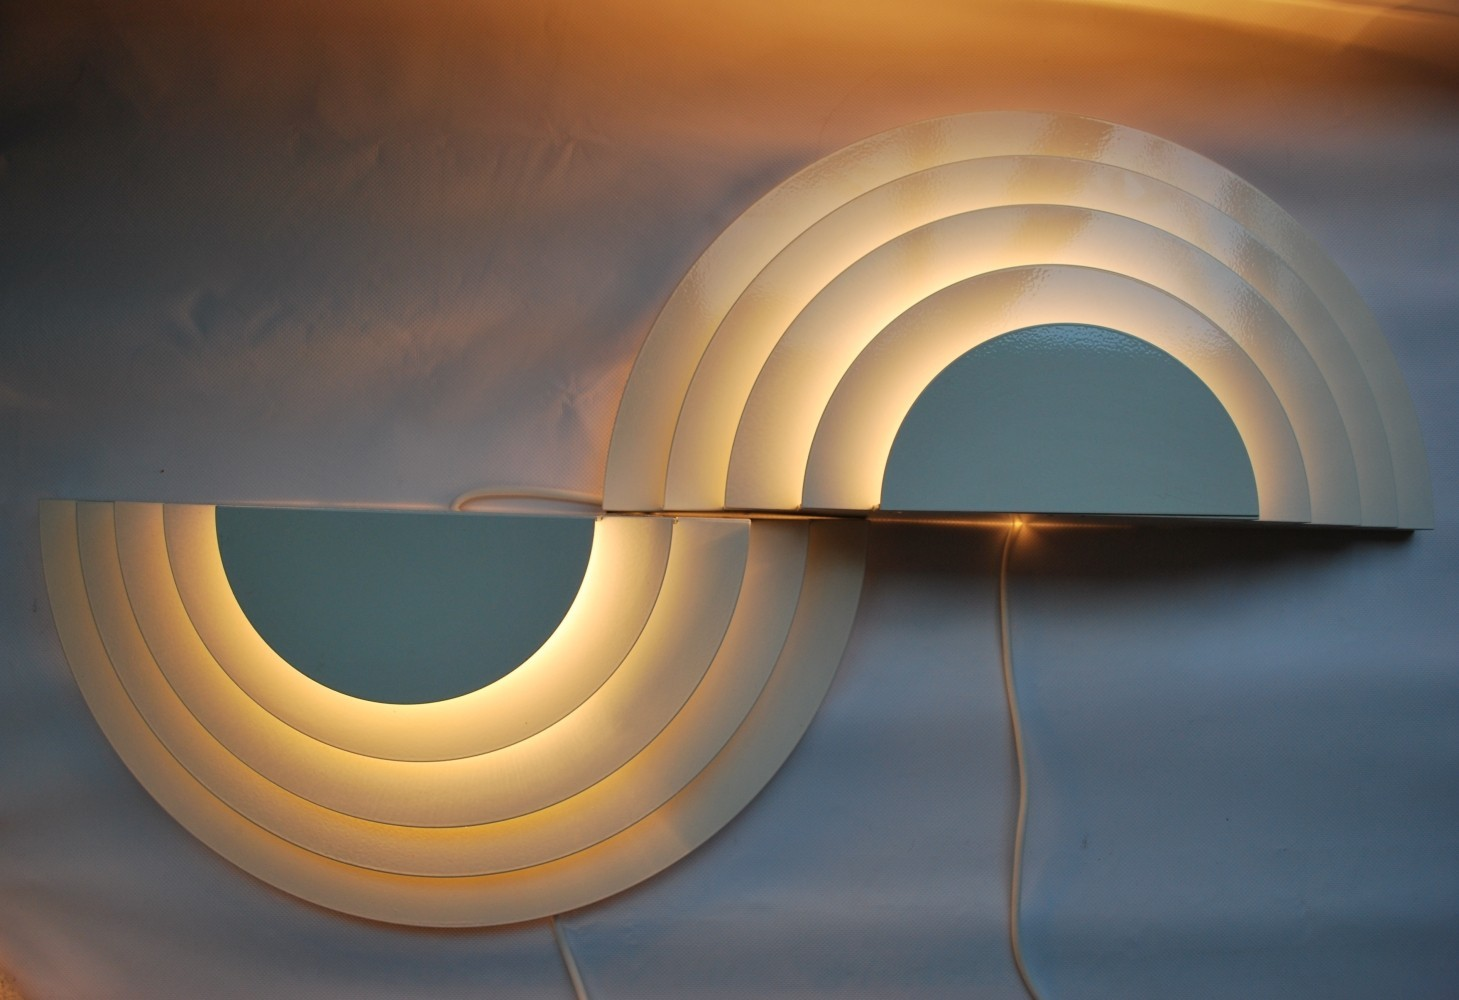 Pair of Meander wall lamps by Cesare Casati & C. Emanuele Ponzio for Raak Amsterdam, 1960s